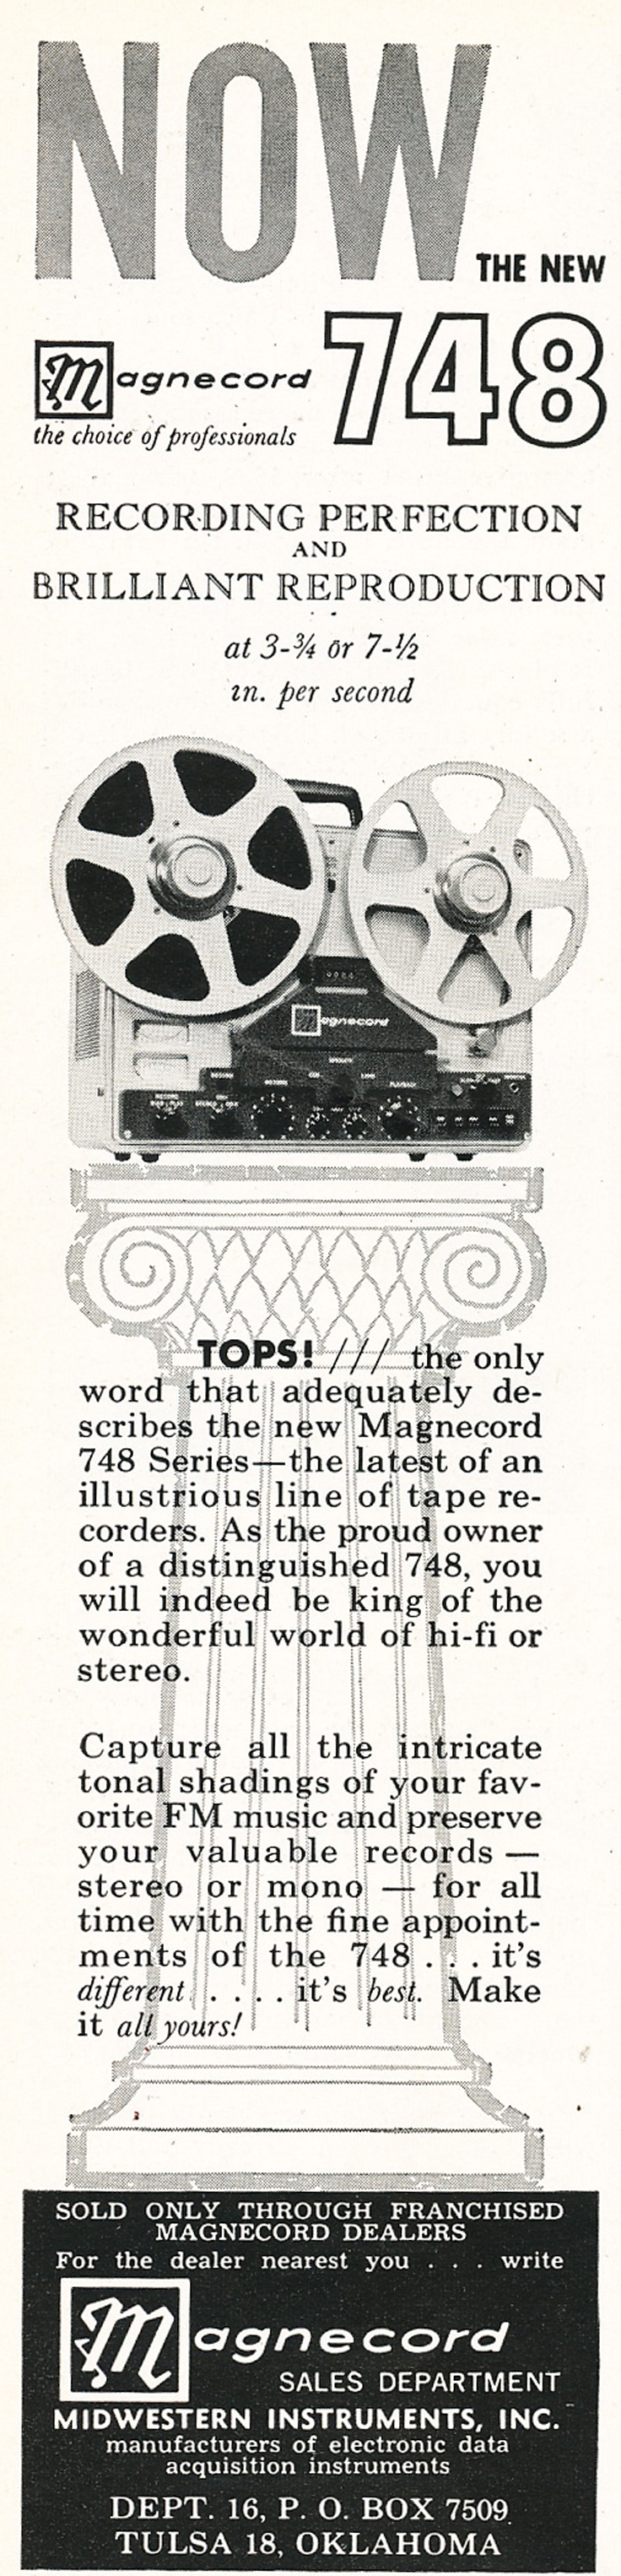 1961 ad for the Magnecord reel to reel tape recorder in the Reel2ReelTexas.com MOMSR vintage recording collection